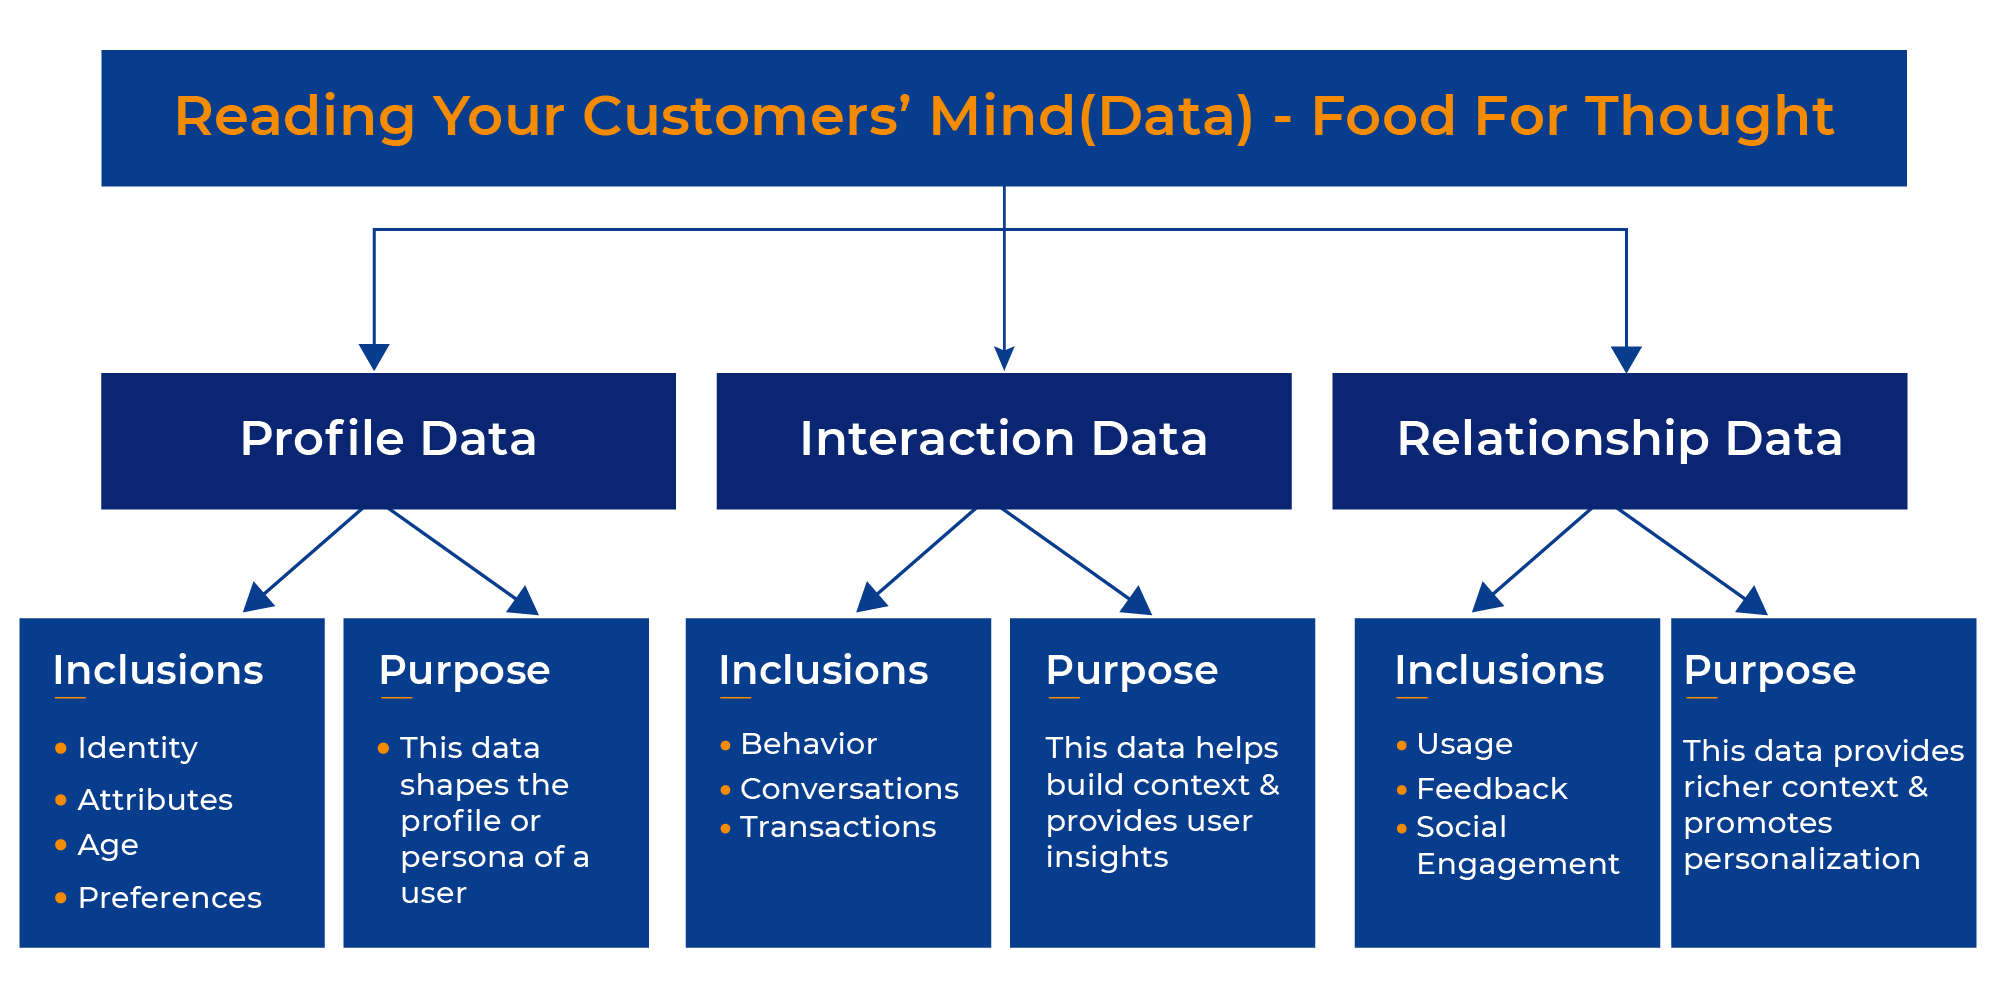 enterprises can determine how their customers are engaging with self-service conten